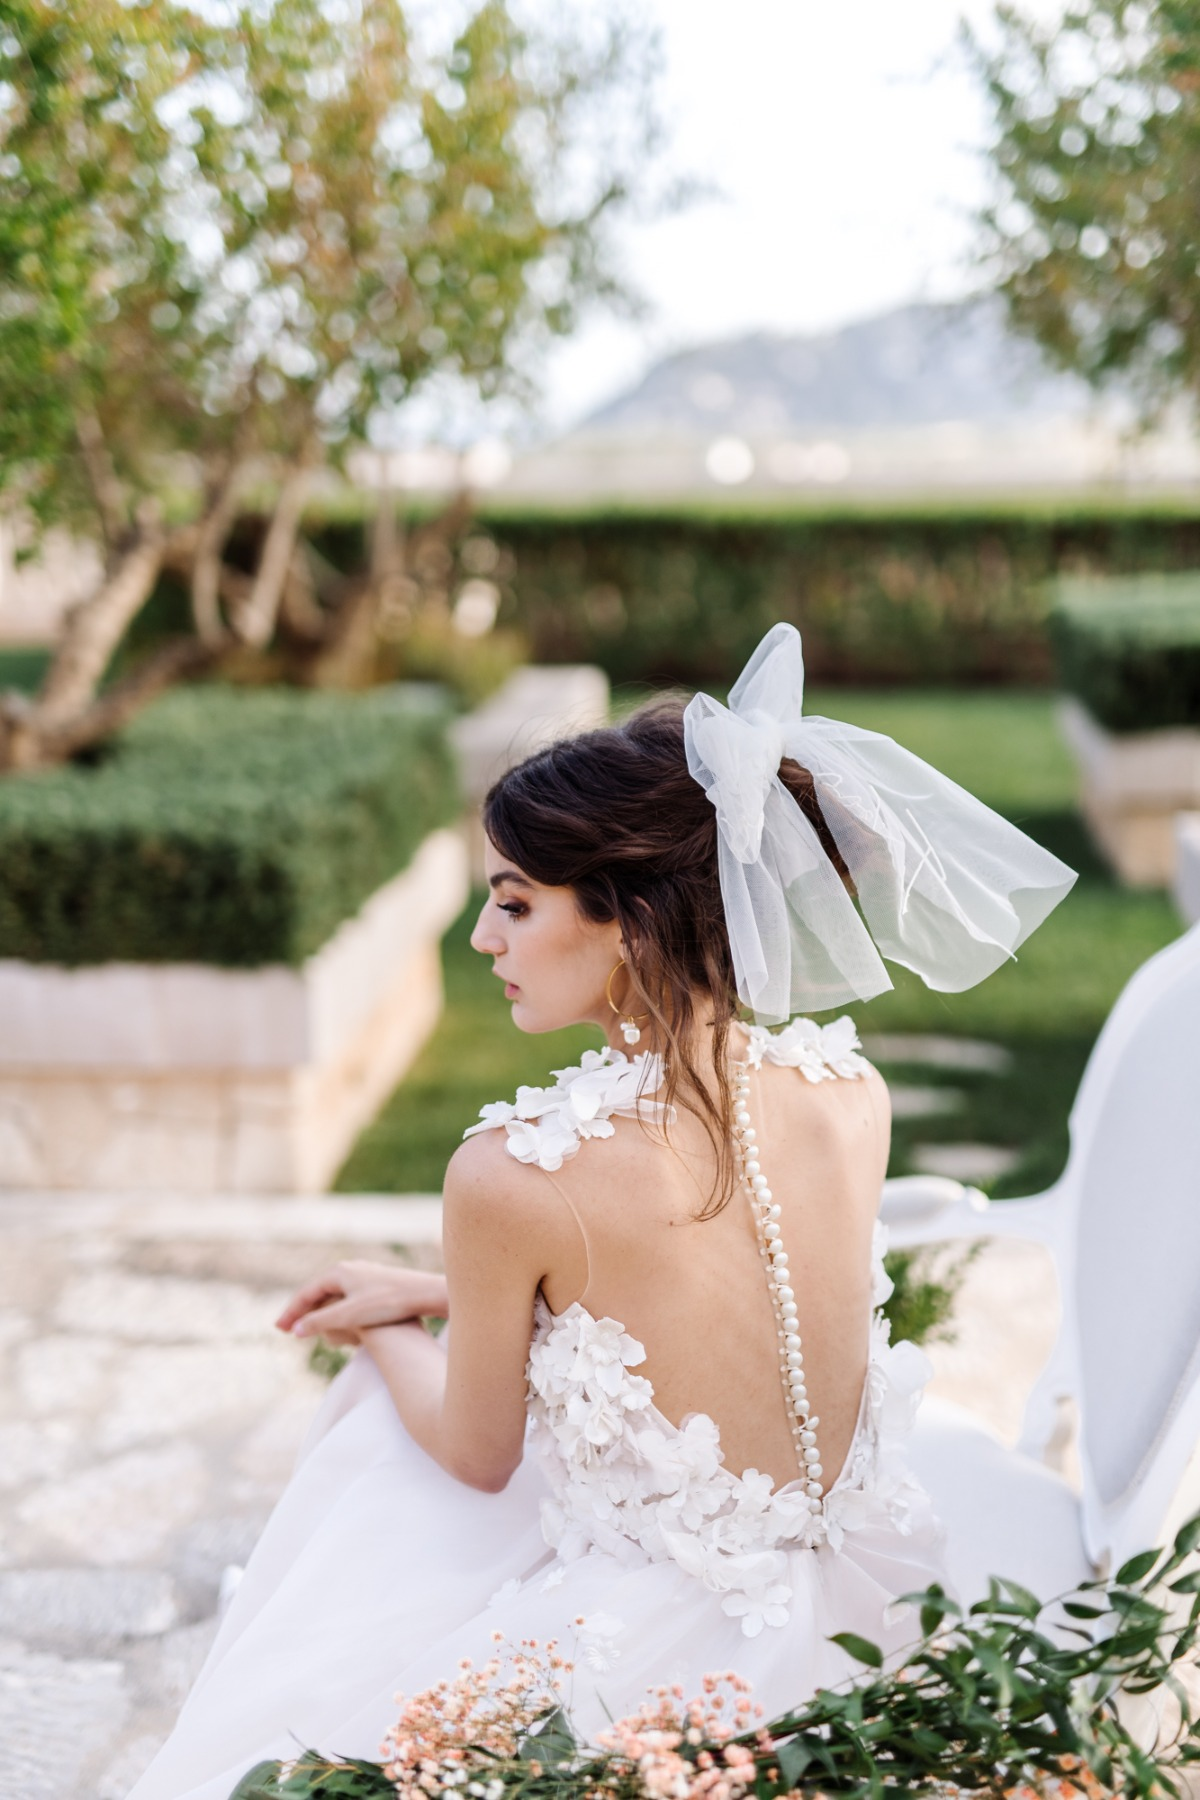 Flirty Spanish Shoot That May Convince You To Elope